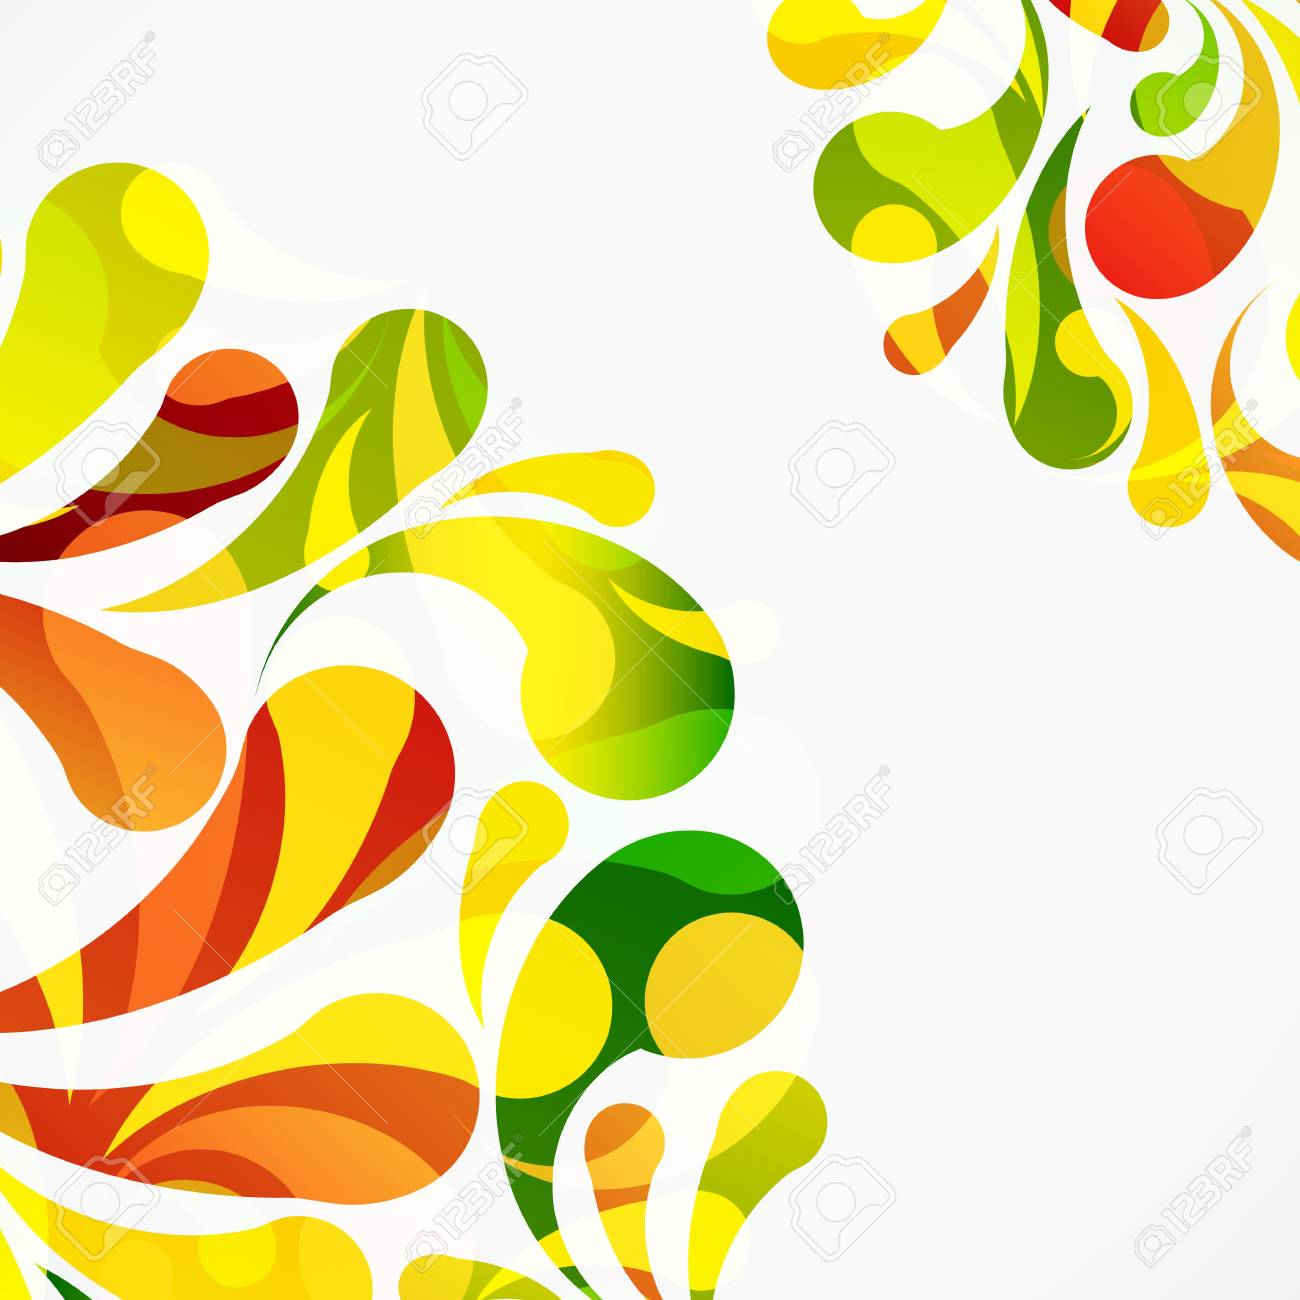 Decorative colorful arc drops background. Stock Vector - 17660080